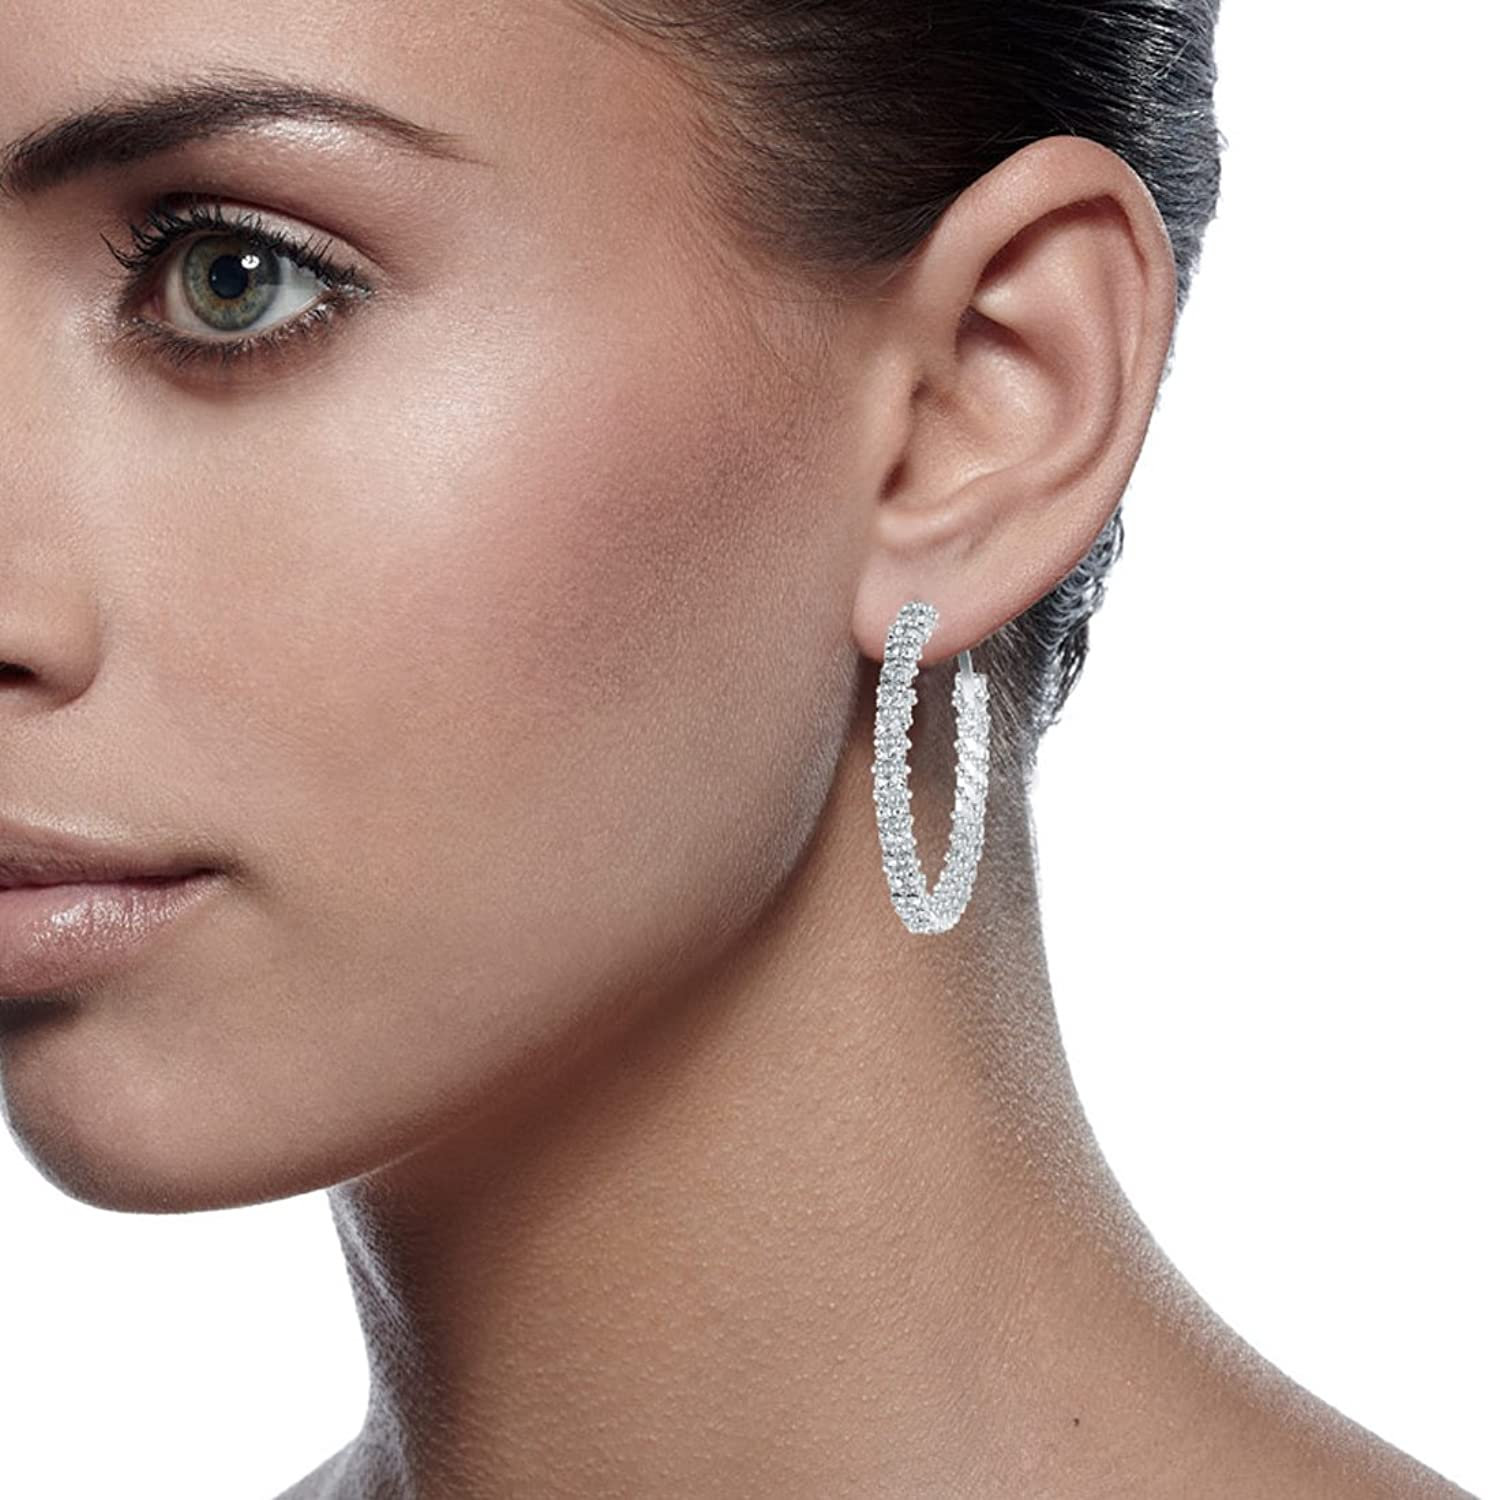 earrings library sandi woman virtual collections pointe of